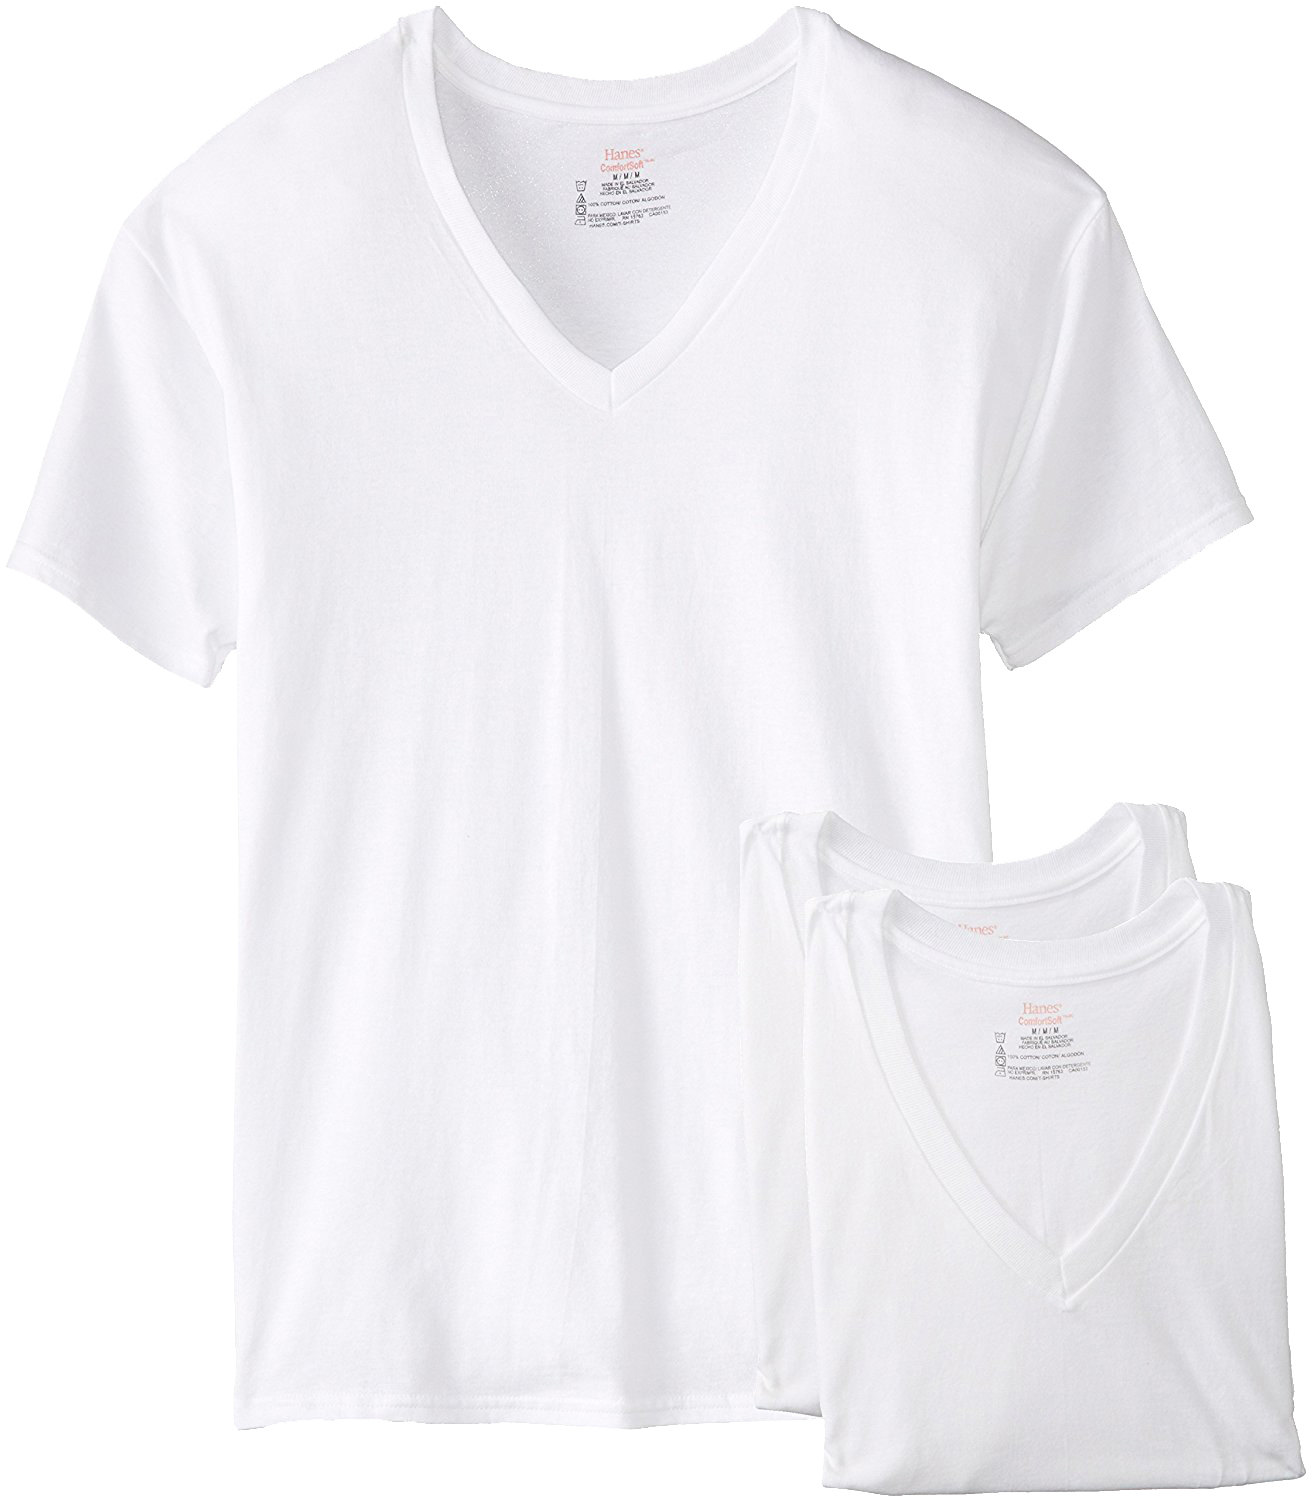 Hanes Men's 3 Pack V Neck T-Shirt  White ,  Black n Grey Pack T Shirt